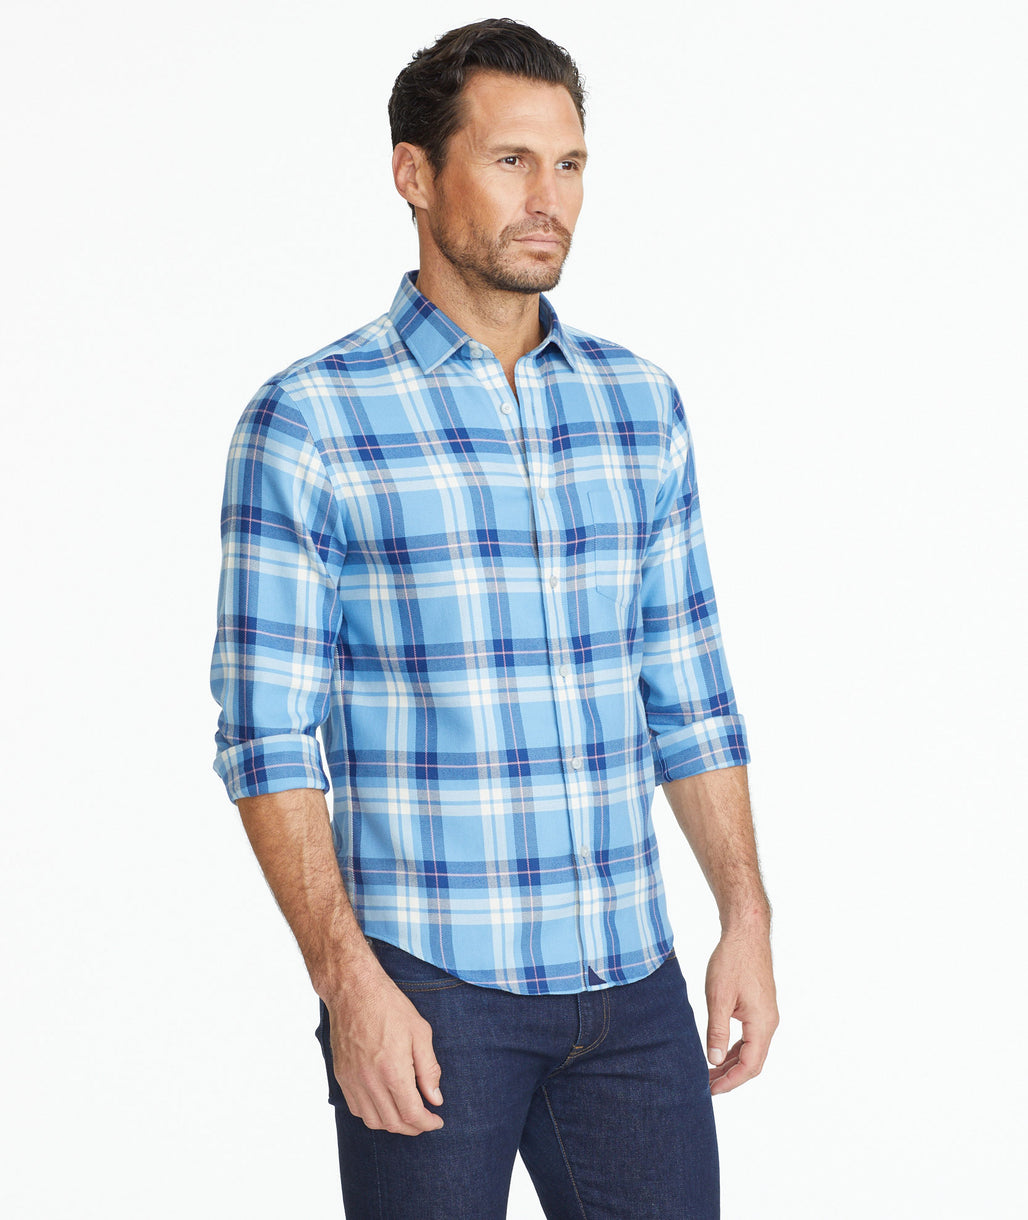 Model wearing a Wrinkle-Free Lightweight Flannel Arrowood Shirt